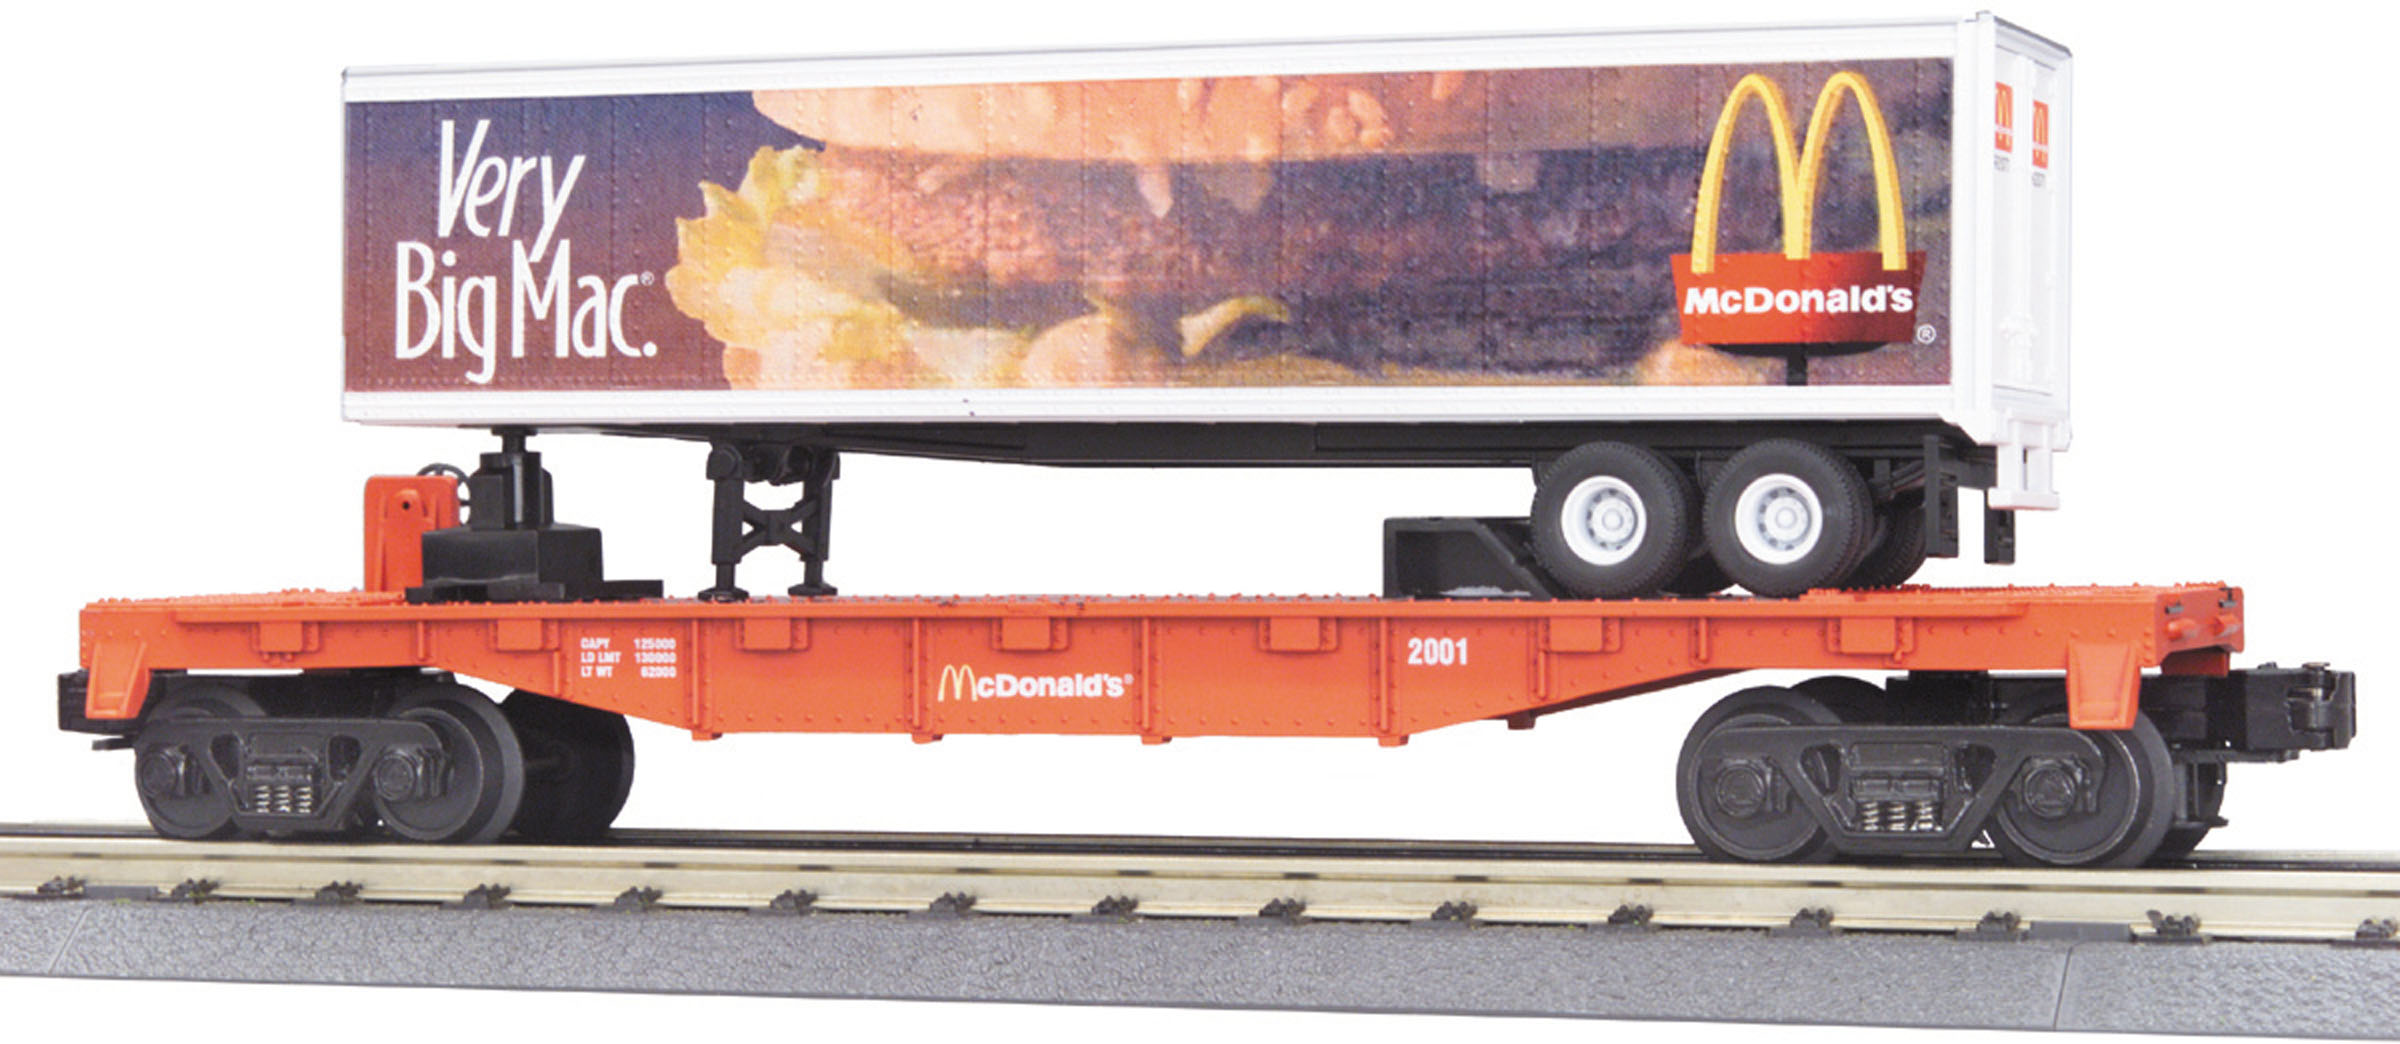 McDonalds Flat Car w/40' Trailer image